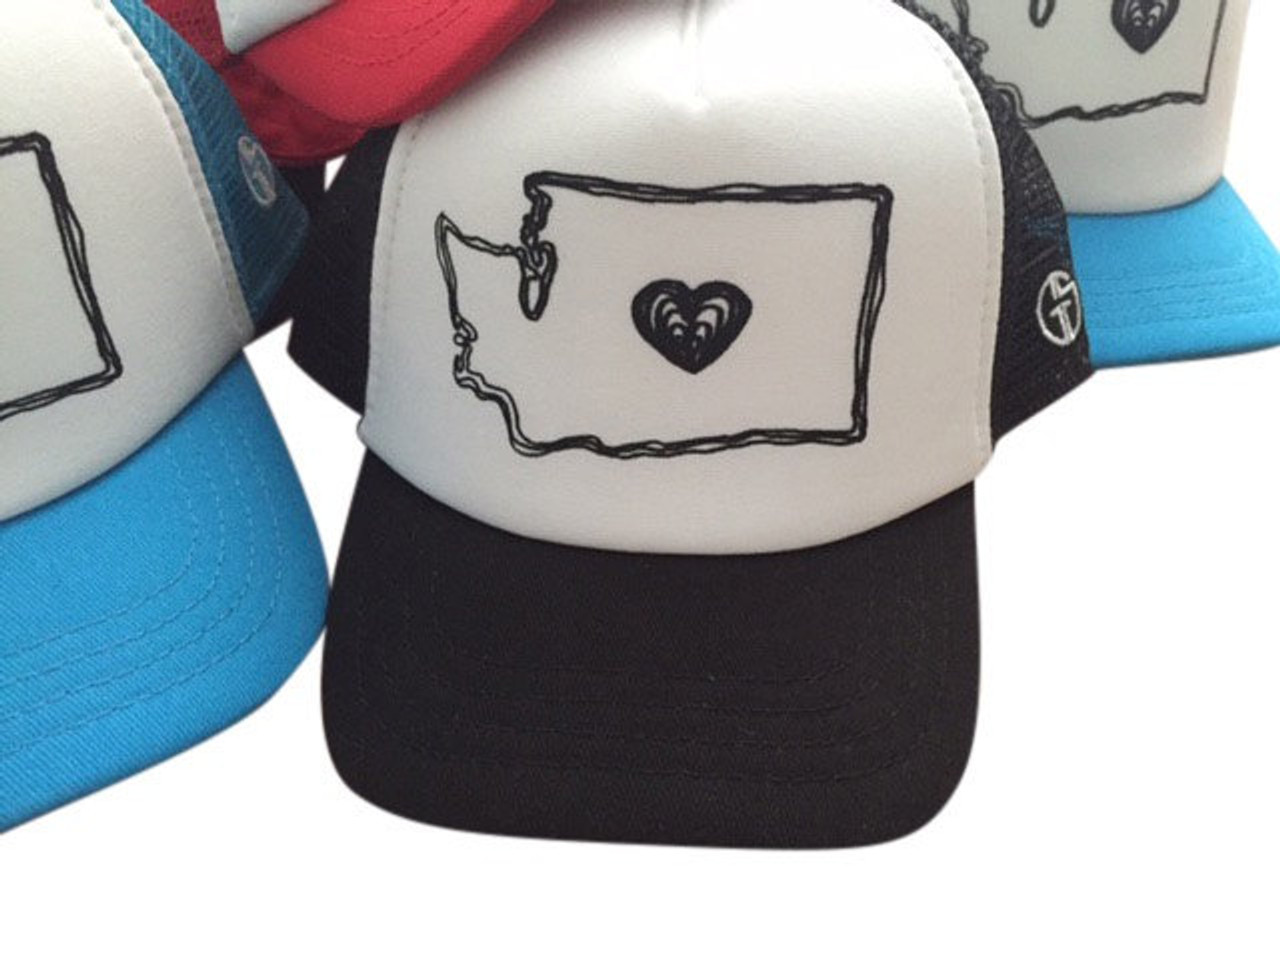 0a89856185b18 https   img.etsystatic.com il 04208e 1112279250  ·  https   img.etsystatic.com il 04208e 1112279250  · Washington Love baby   toddler  foam trucker hat ...